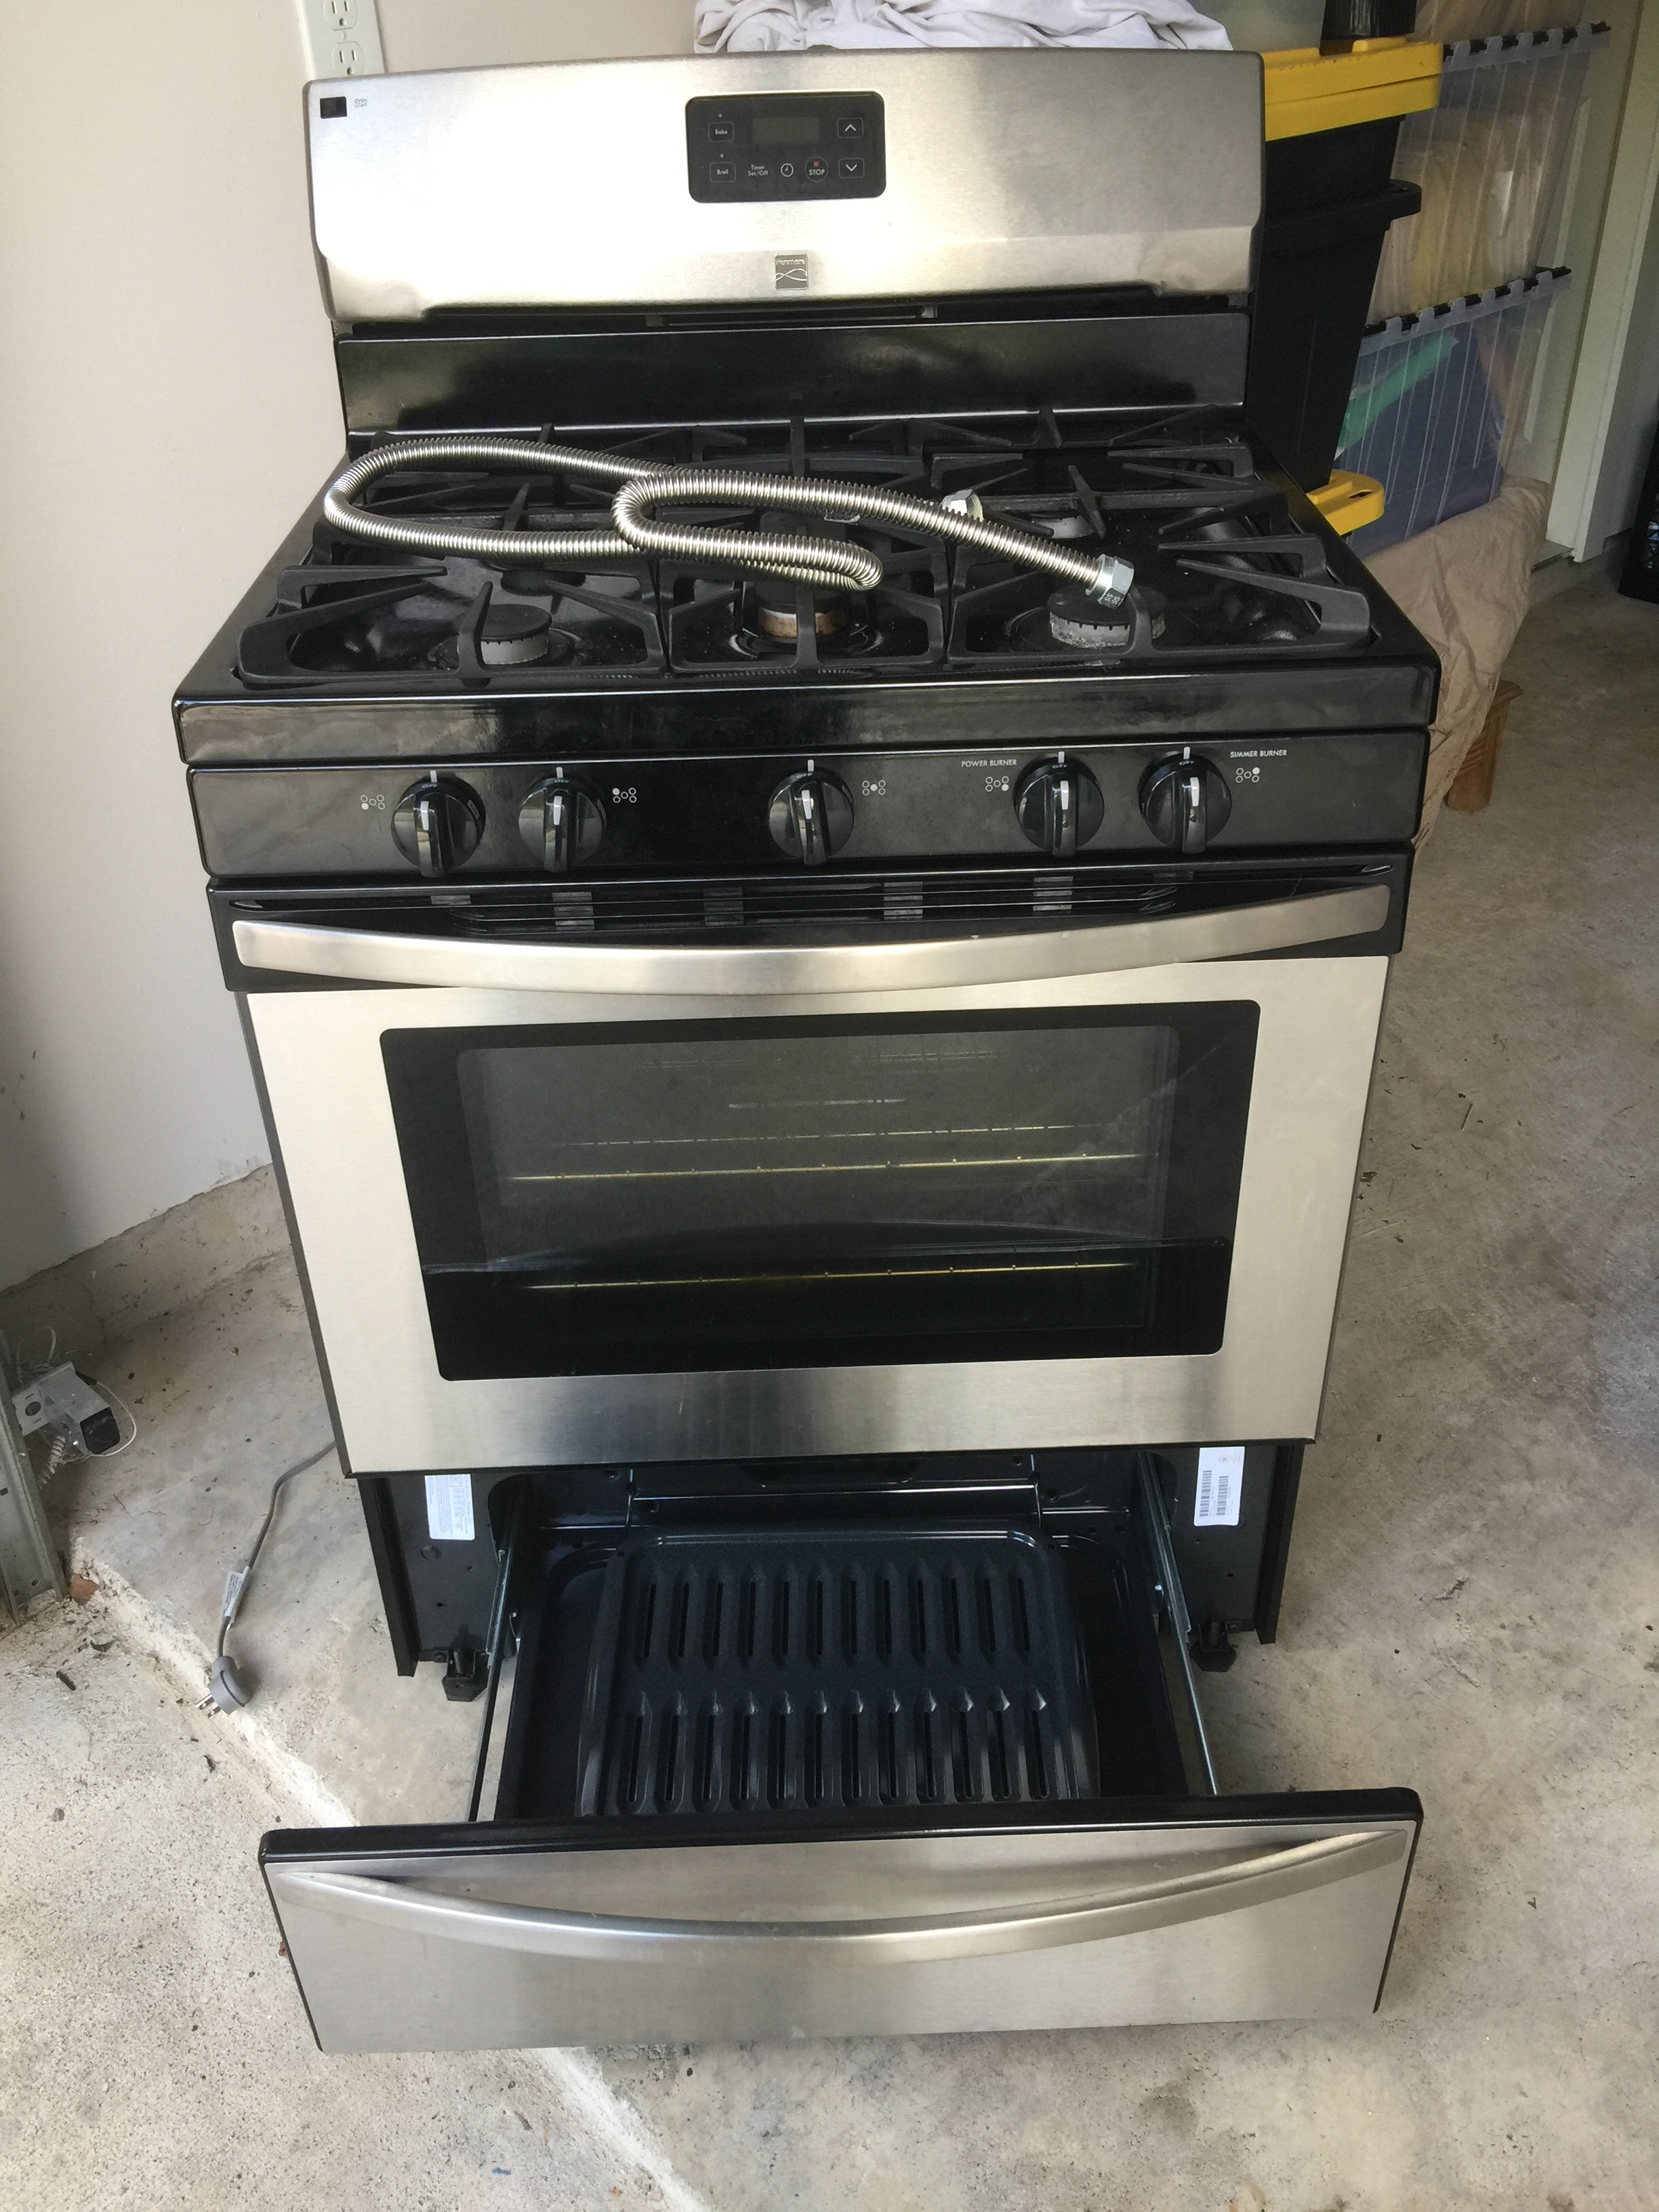 September 2017 - Helping provide a range+oven combo to a Harvey survivor.